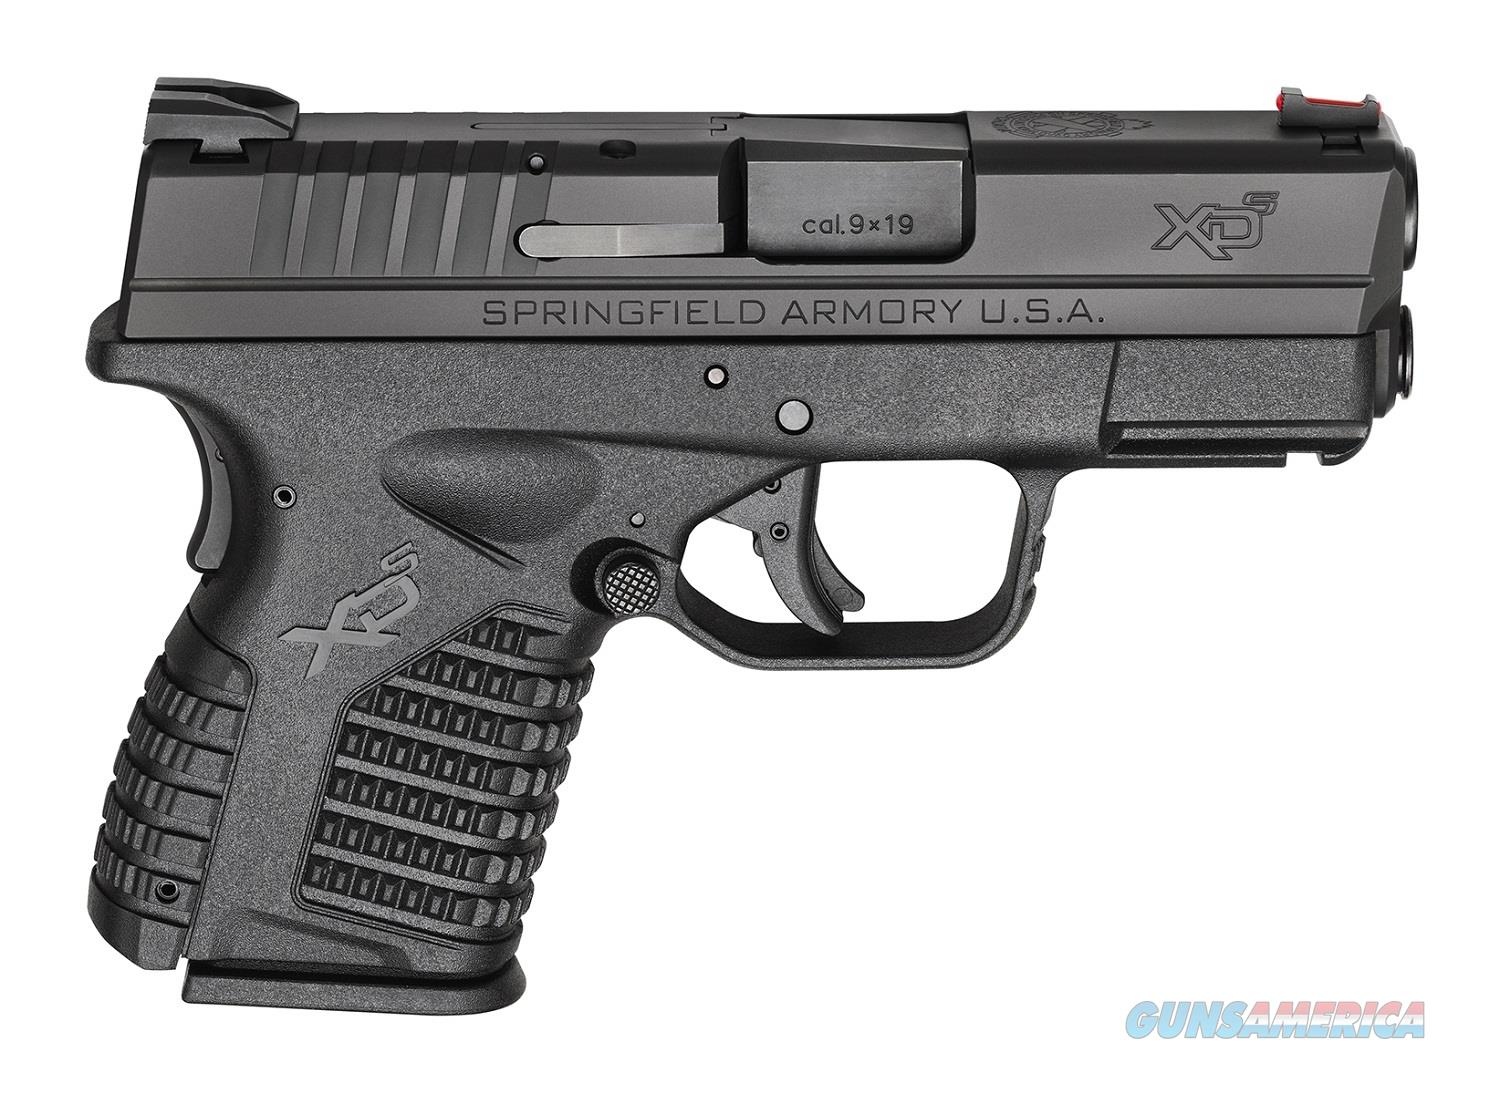 Springfield XDS 9mm 3.3 inch Barrel With Crimson Trace   Guns > Pistols > Springfield Armory Pistols > XD-S